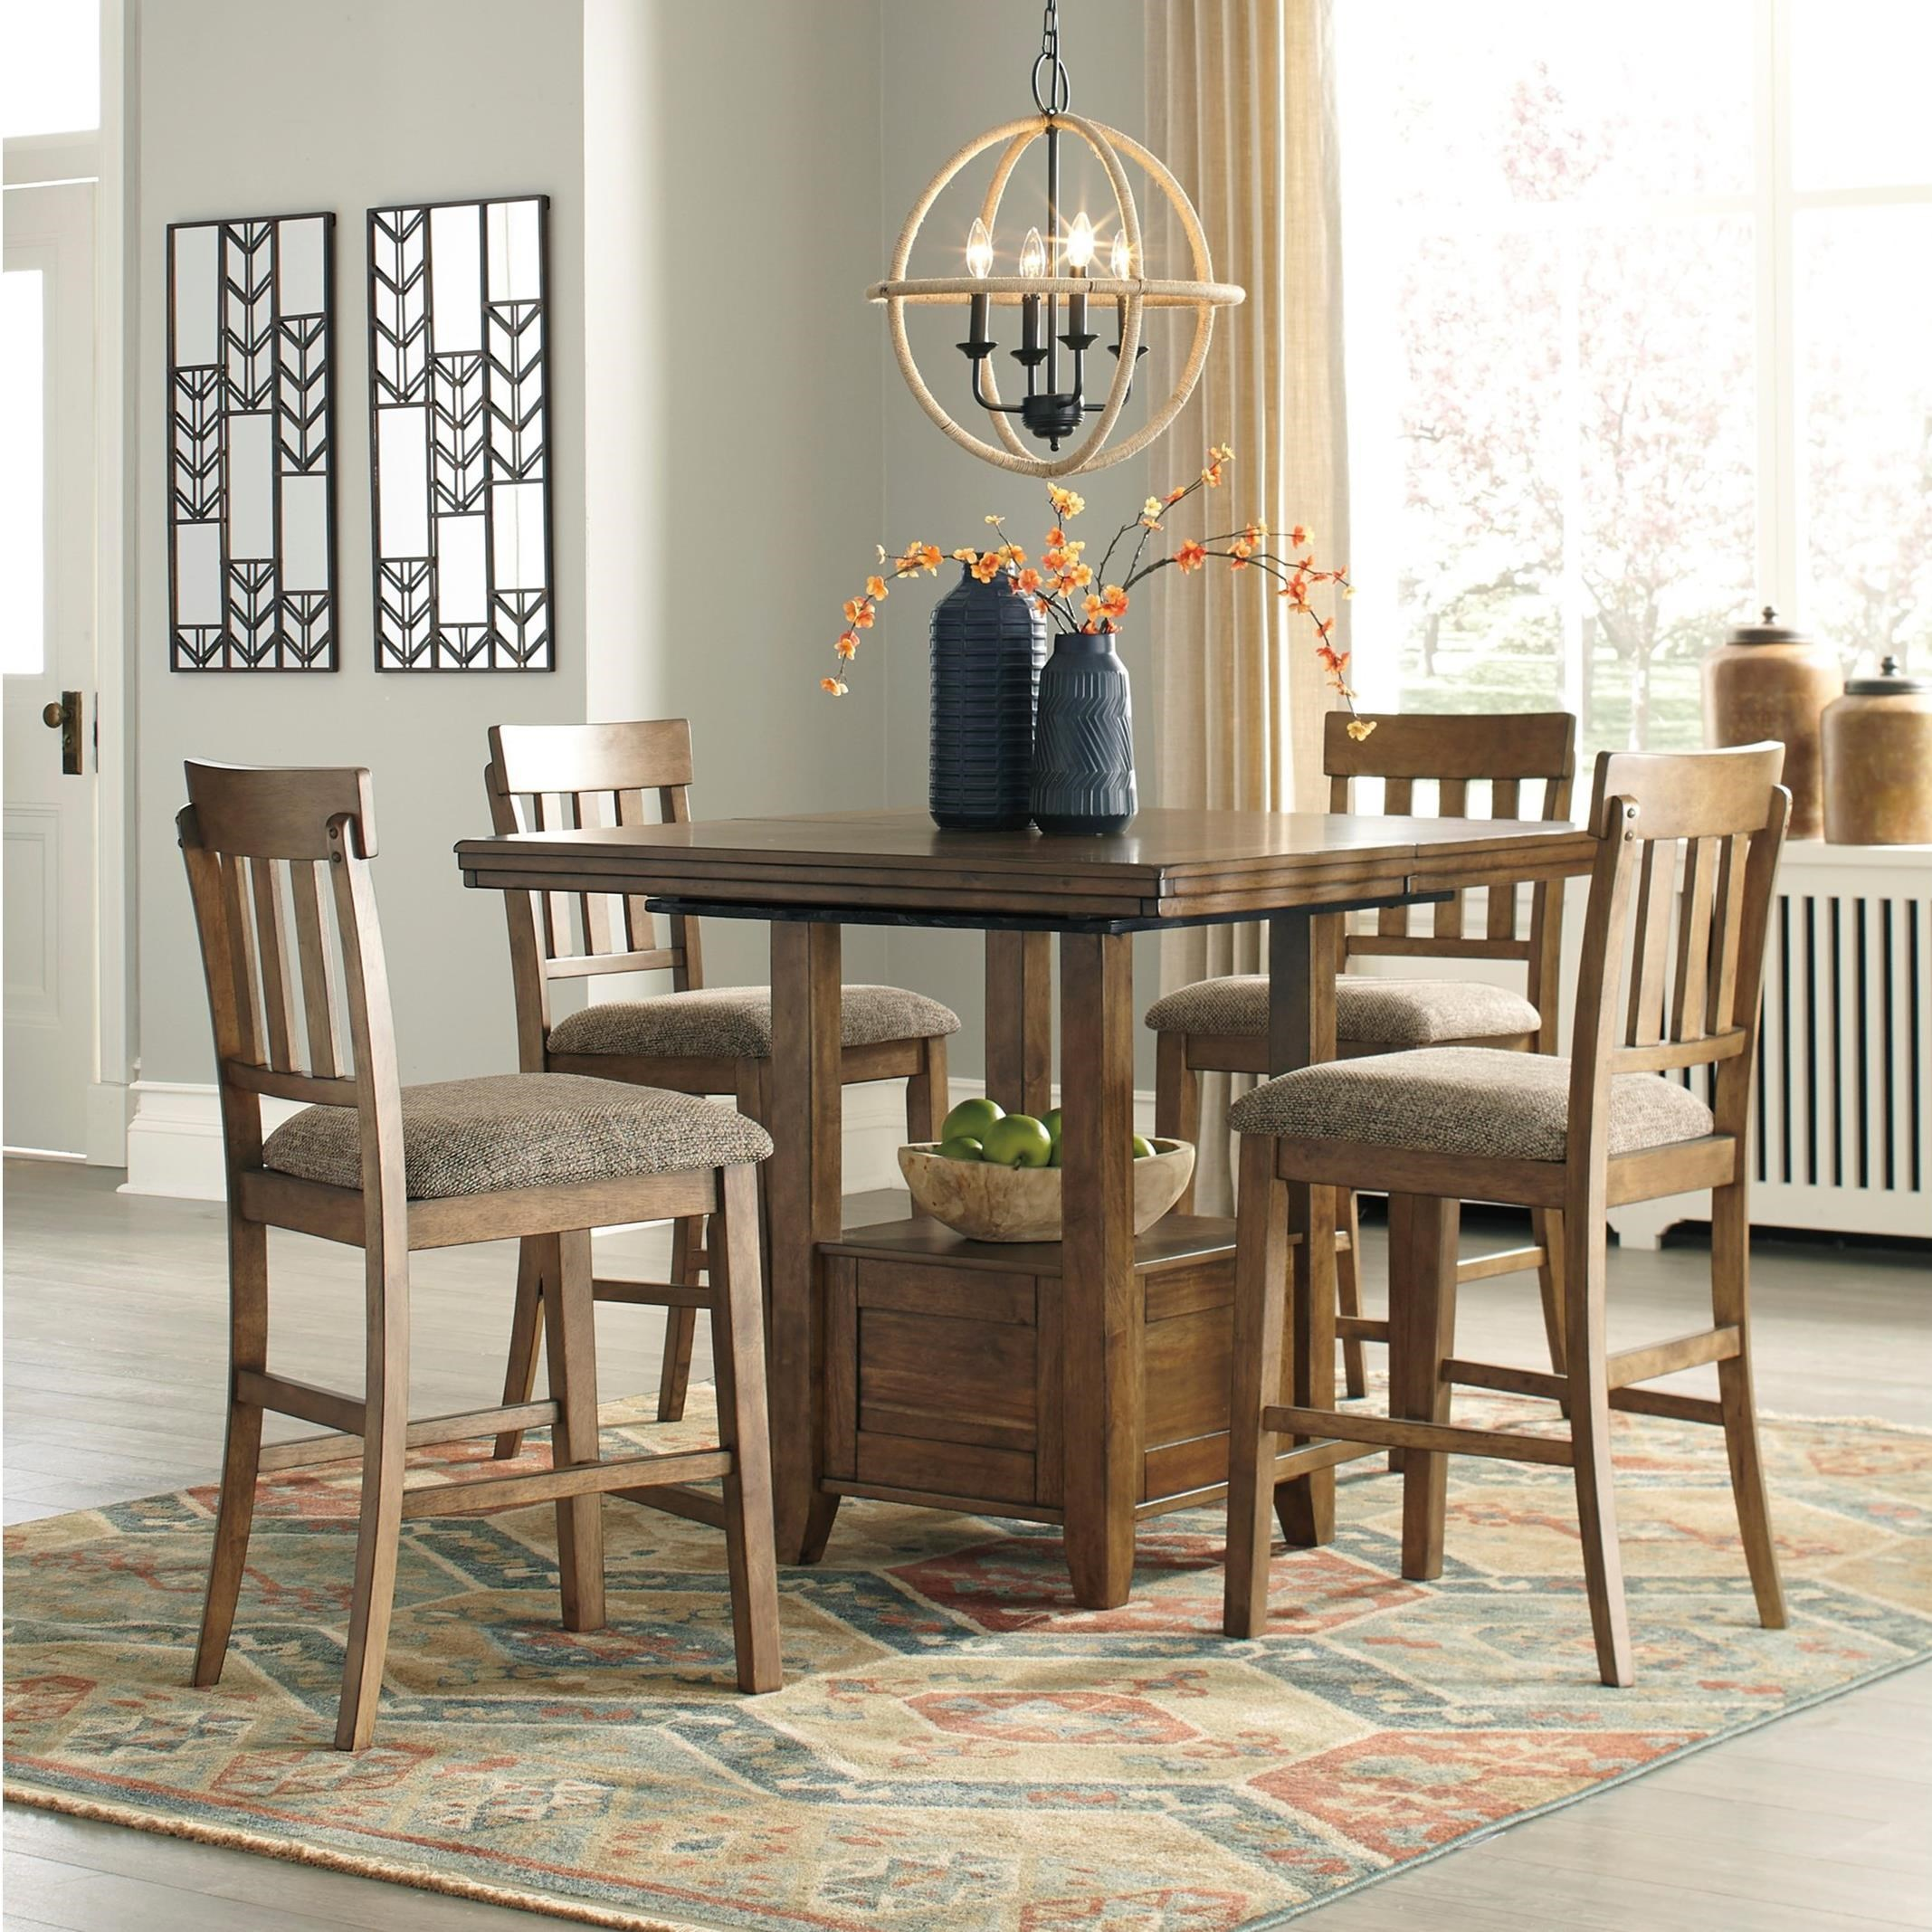 Pub Style Dining Room Set: Benchcraft Flaybern 5 Piece Pub Dining Set